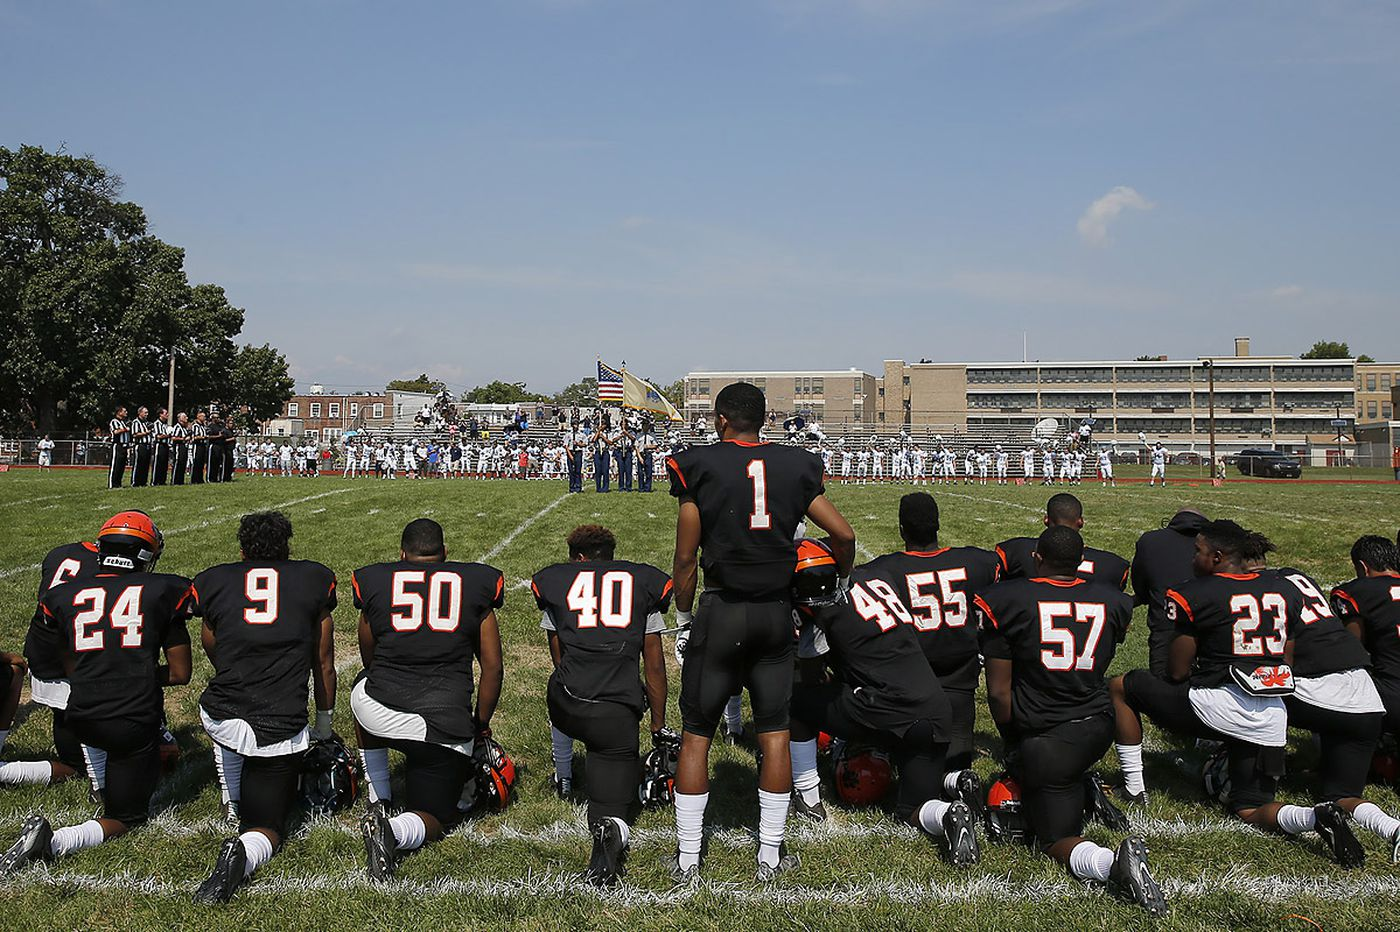 Camden coach: Why my players and I took a knee